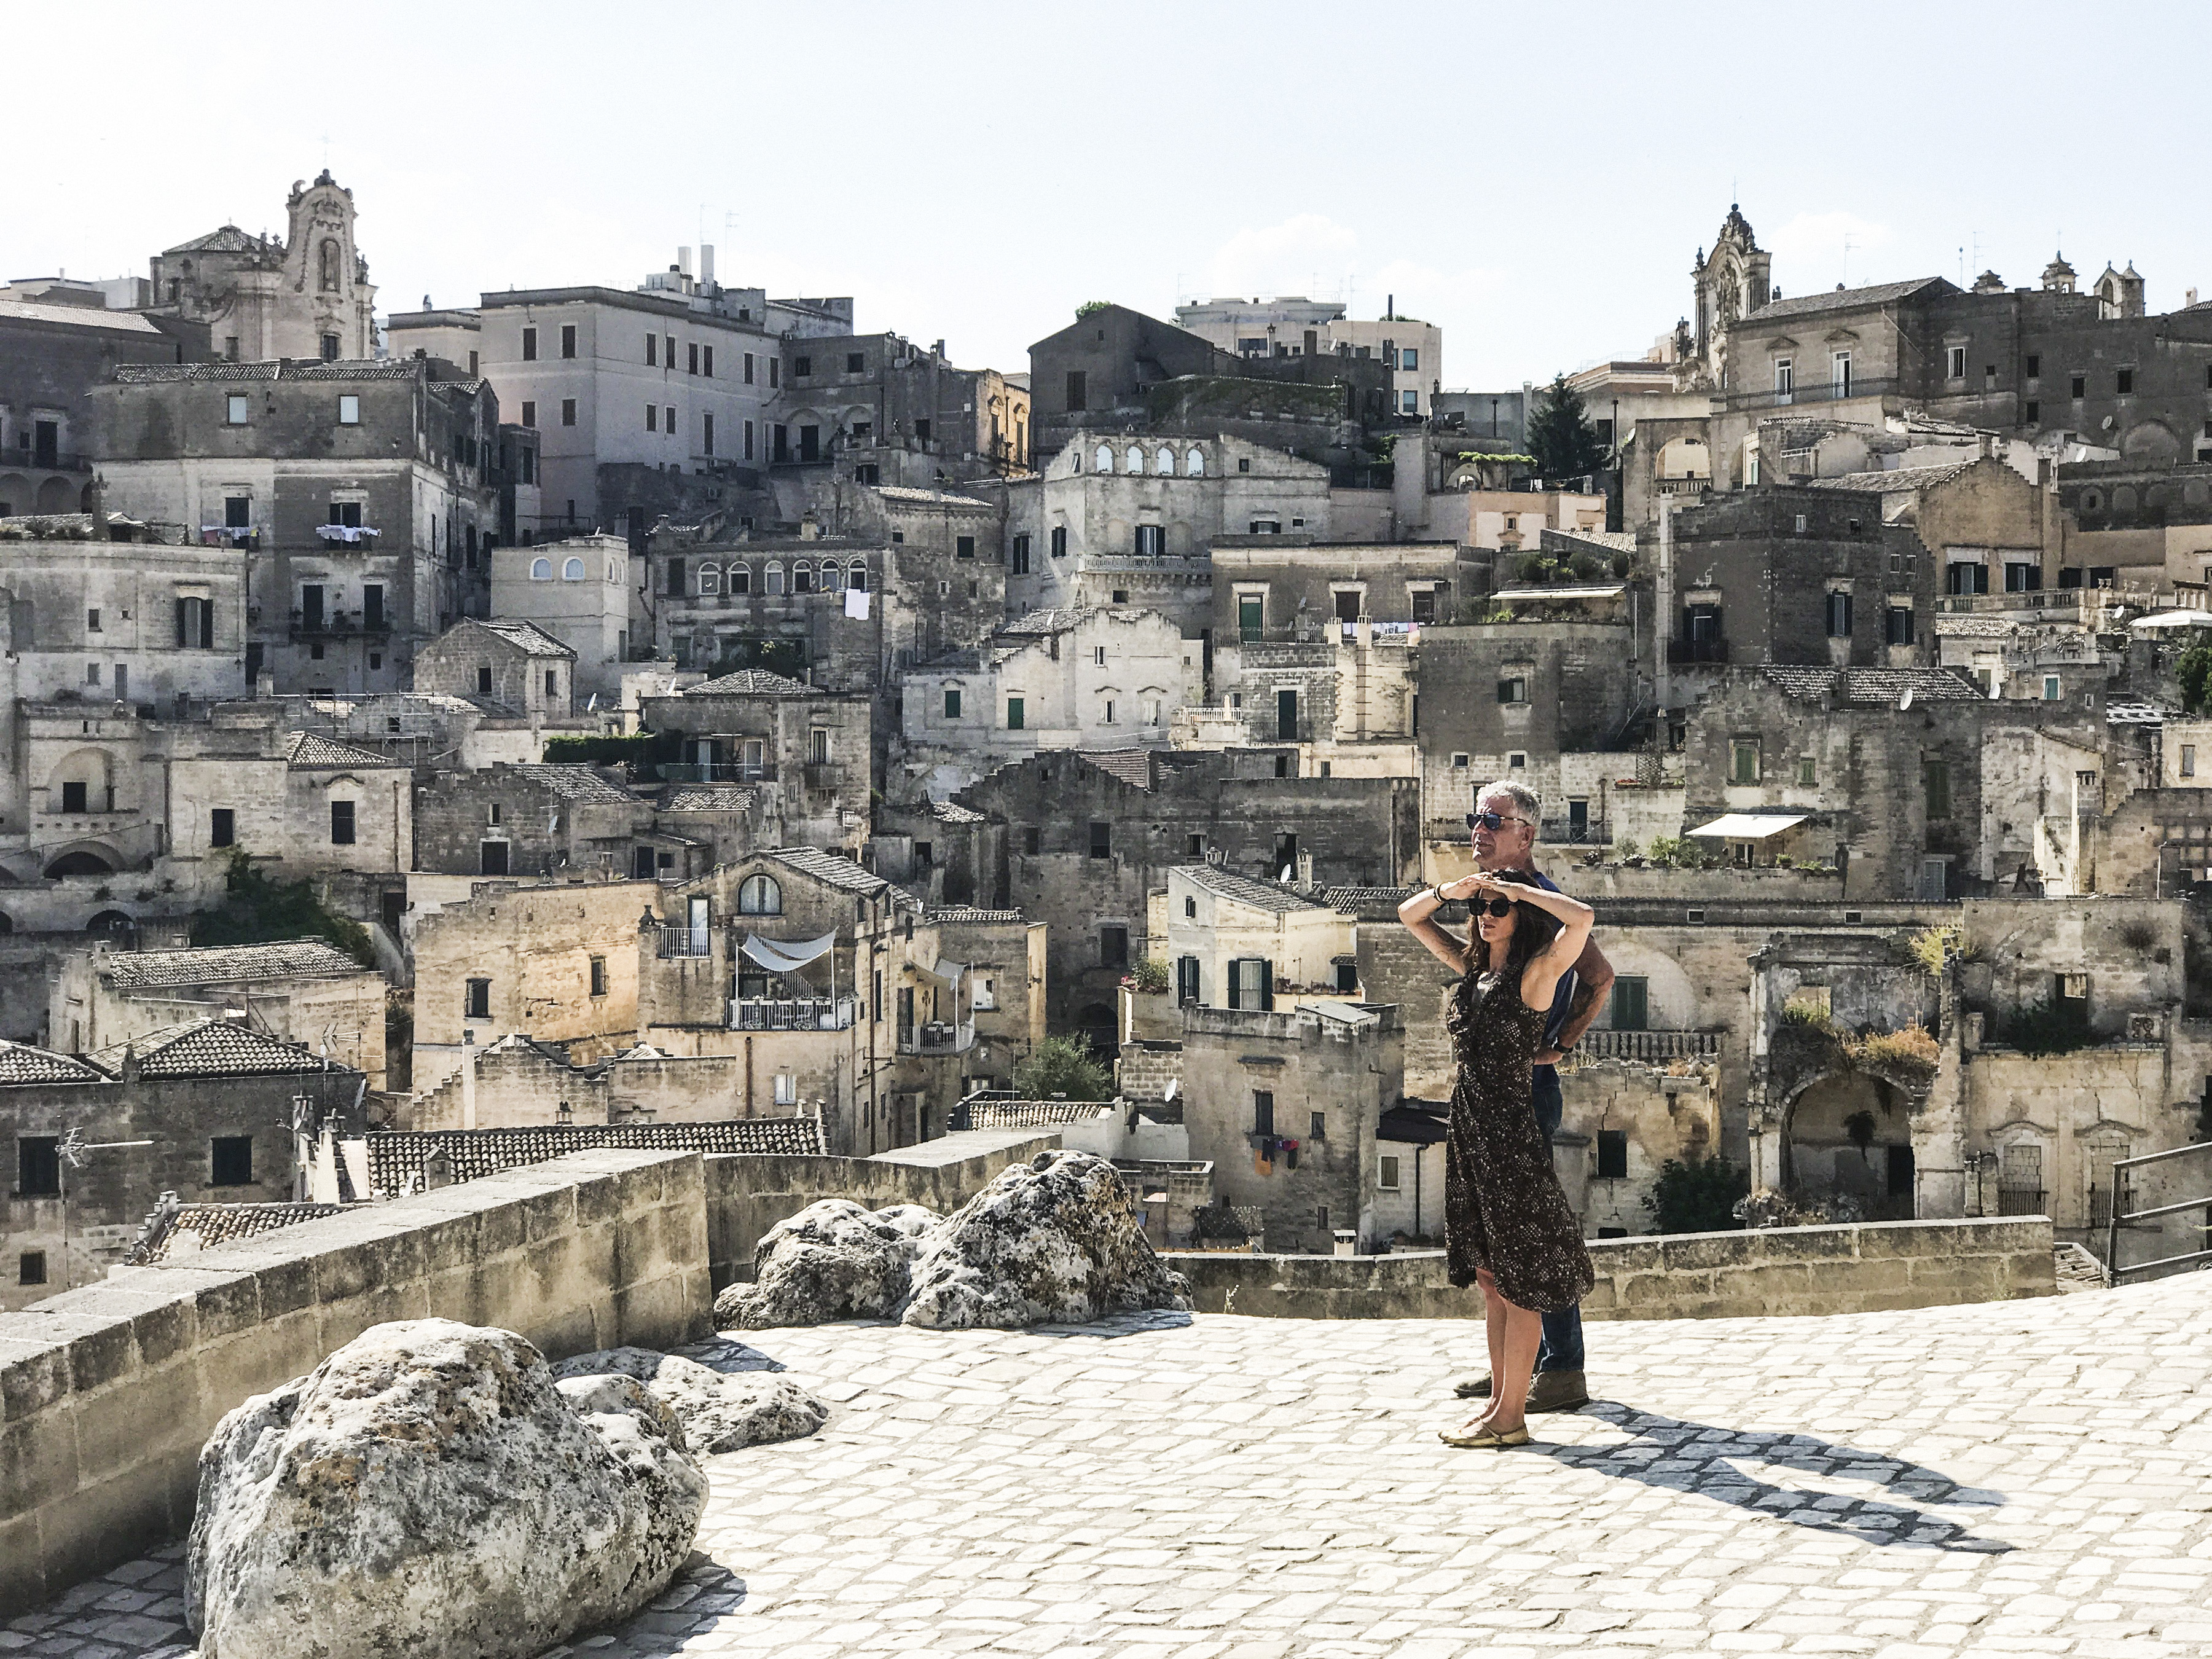 Bourdain's field notes: Southern Italy